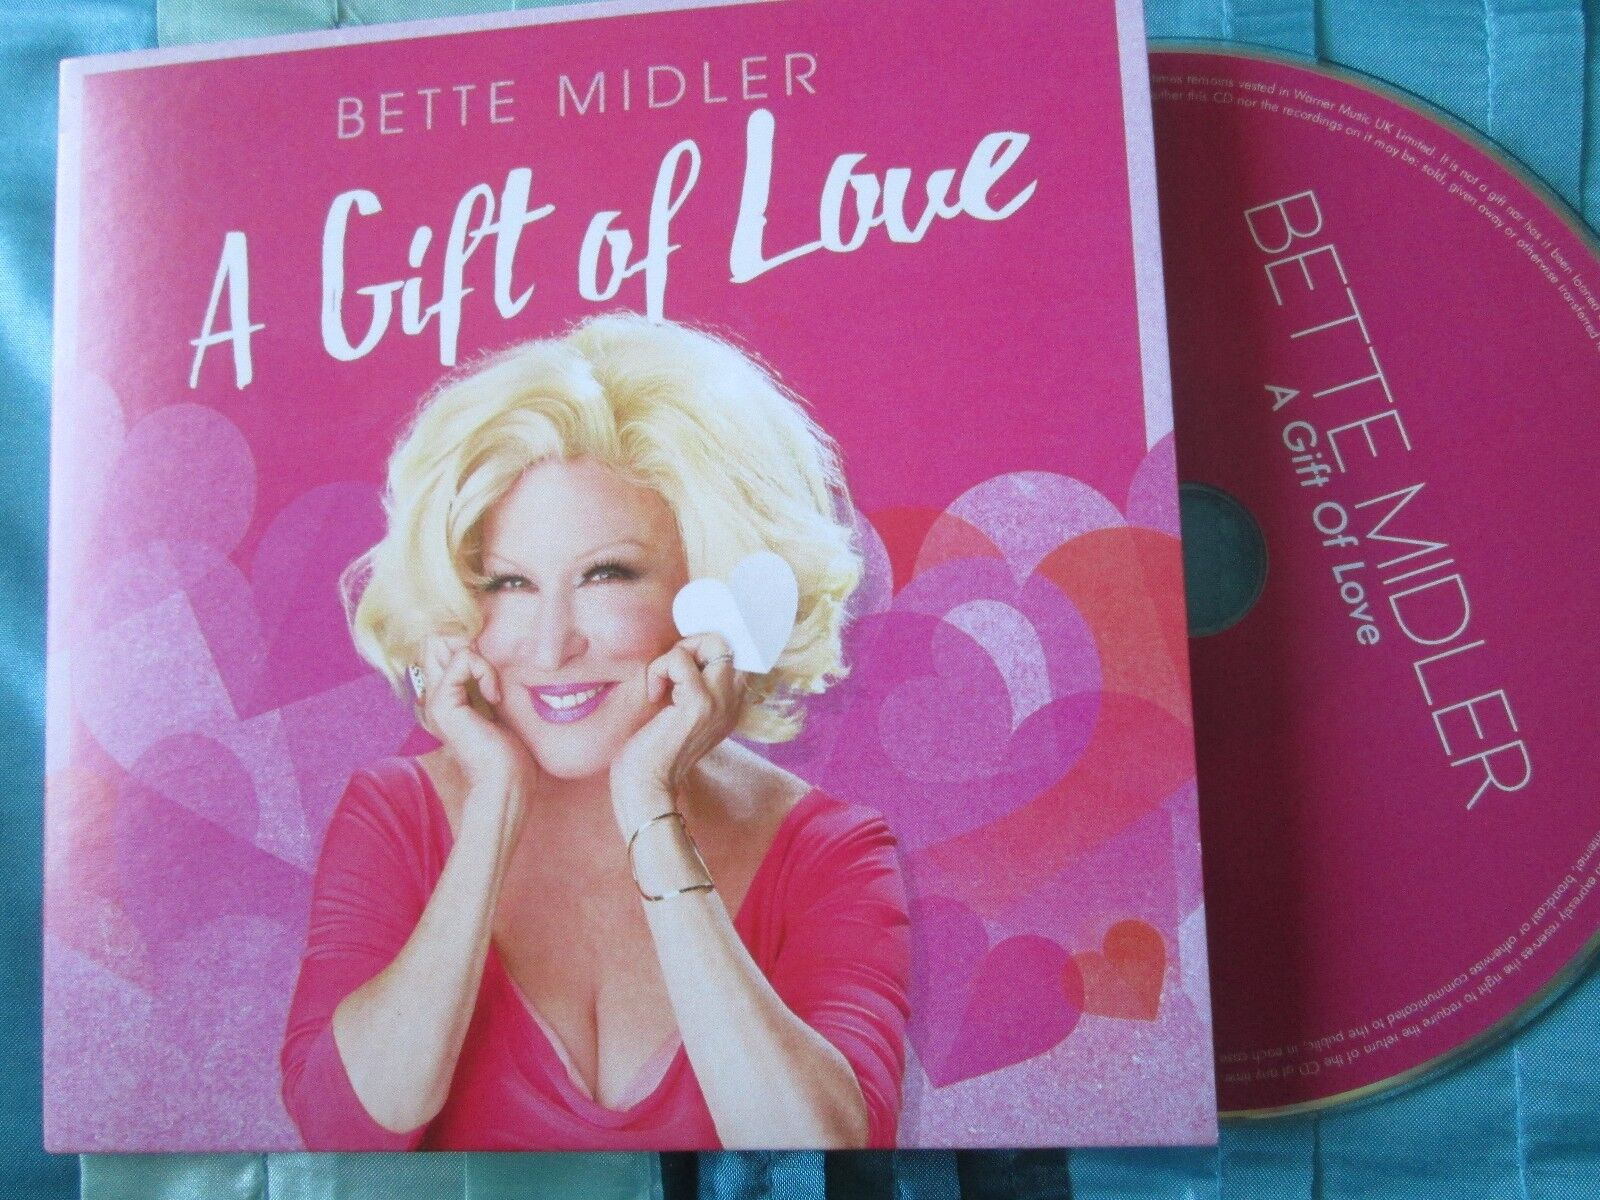 Rhino Records to Release Bette Midler's The Divine Miss M: Deluxe Edition' with Unreleased Demos, New Liner Notes